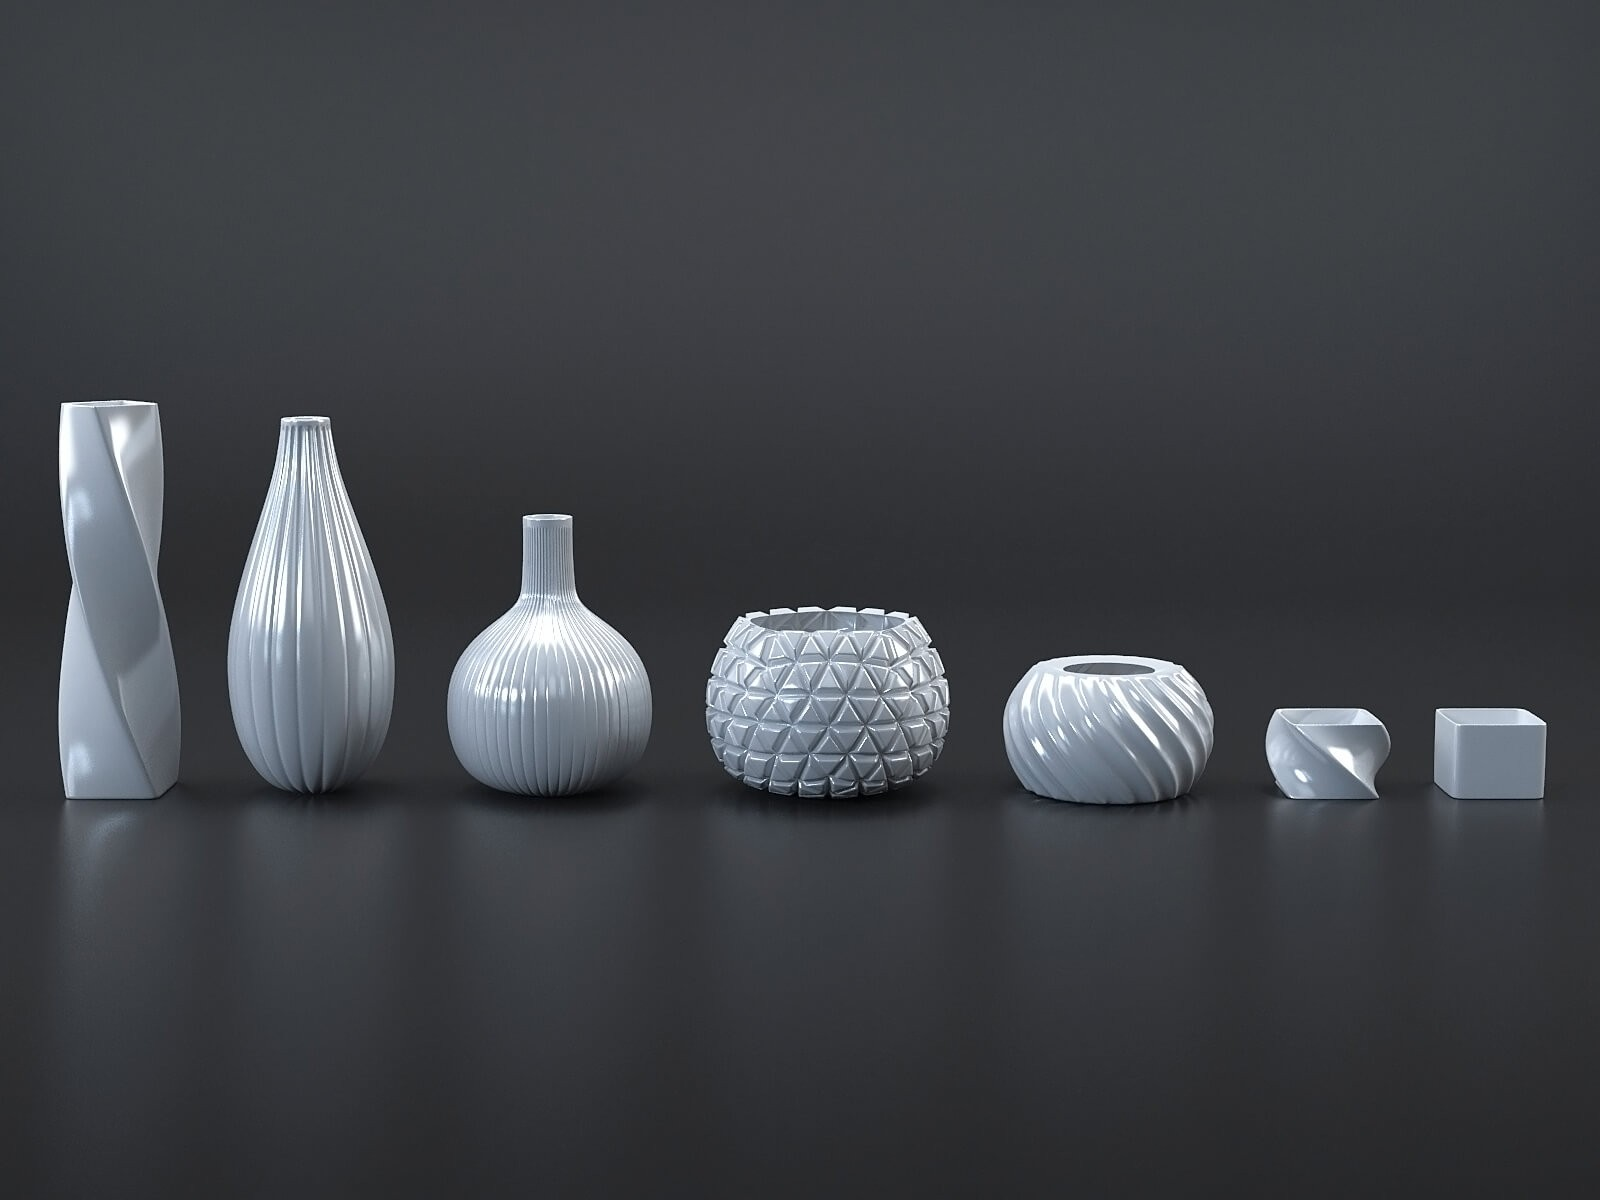 White/Black vases collection